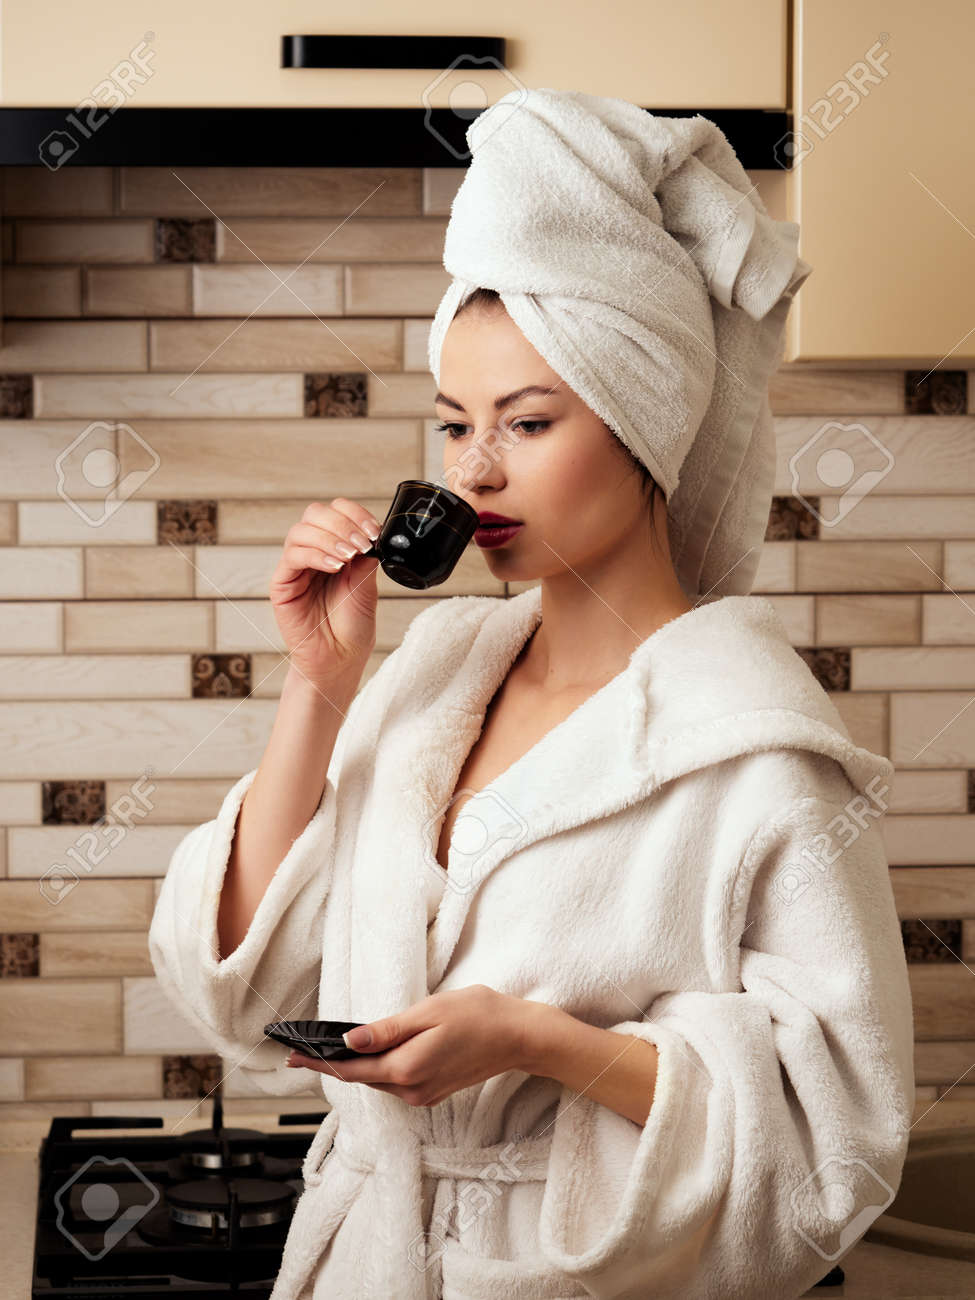 A young woman, a housewife in the kitchen, drinks coffee after a shower in a white bathrobe. - 167003138